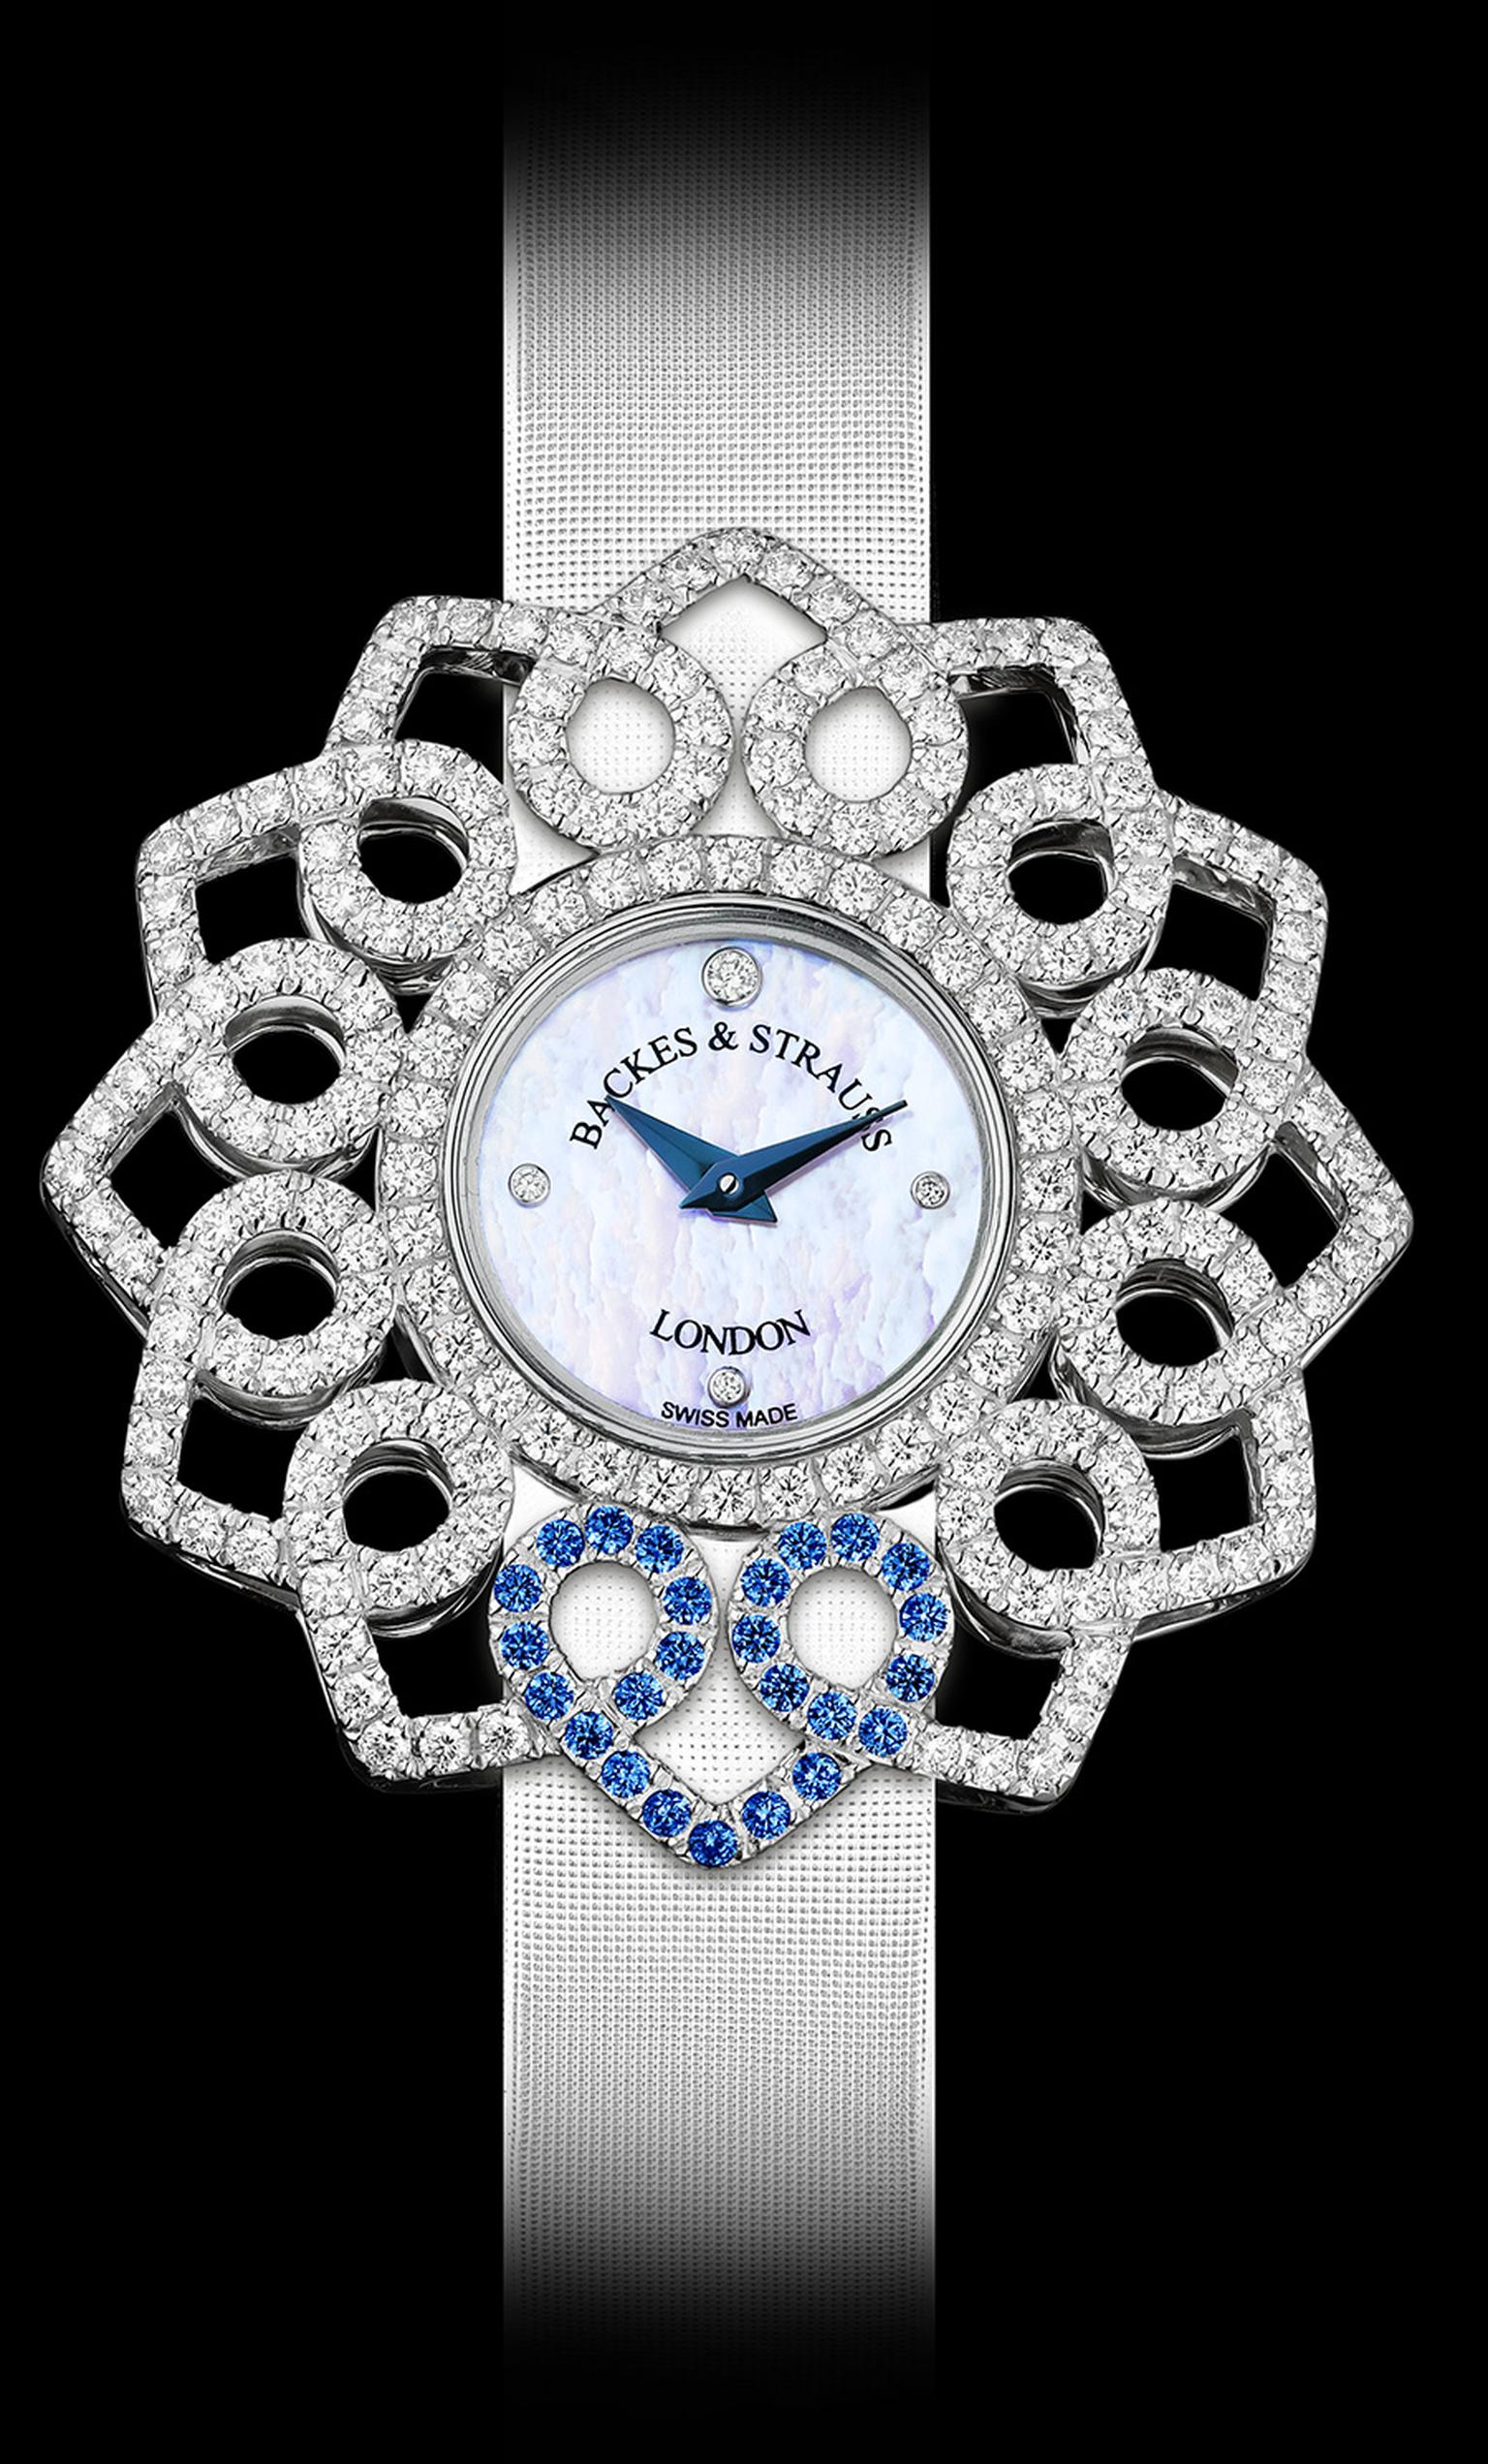 Backes & Strauss Victoria Blue Heart watch